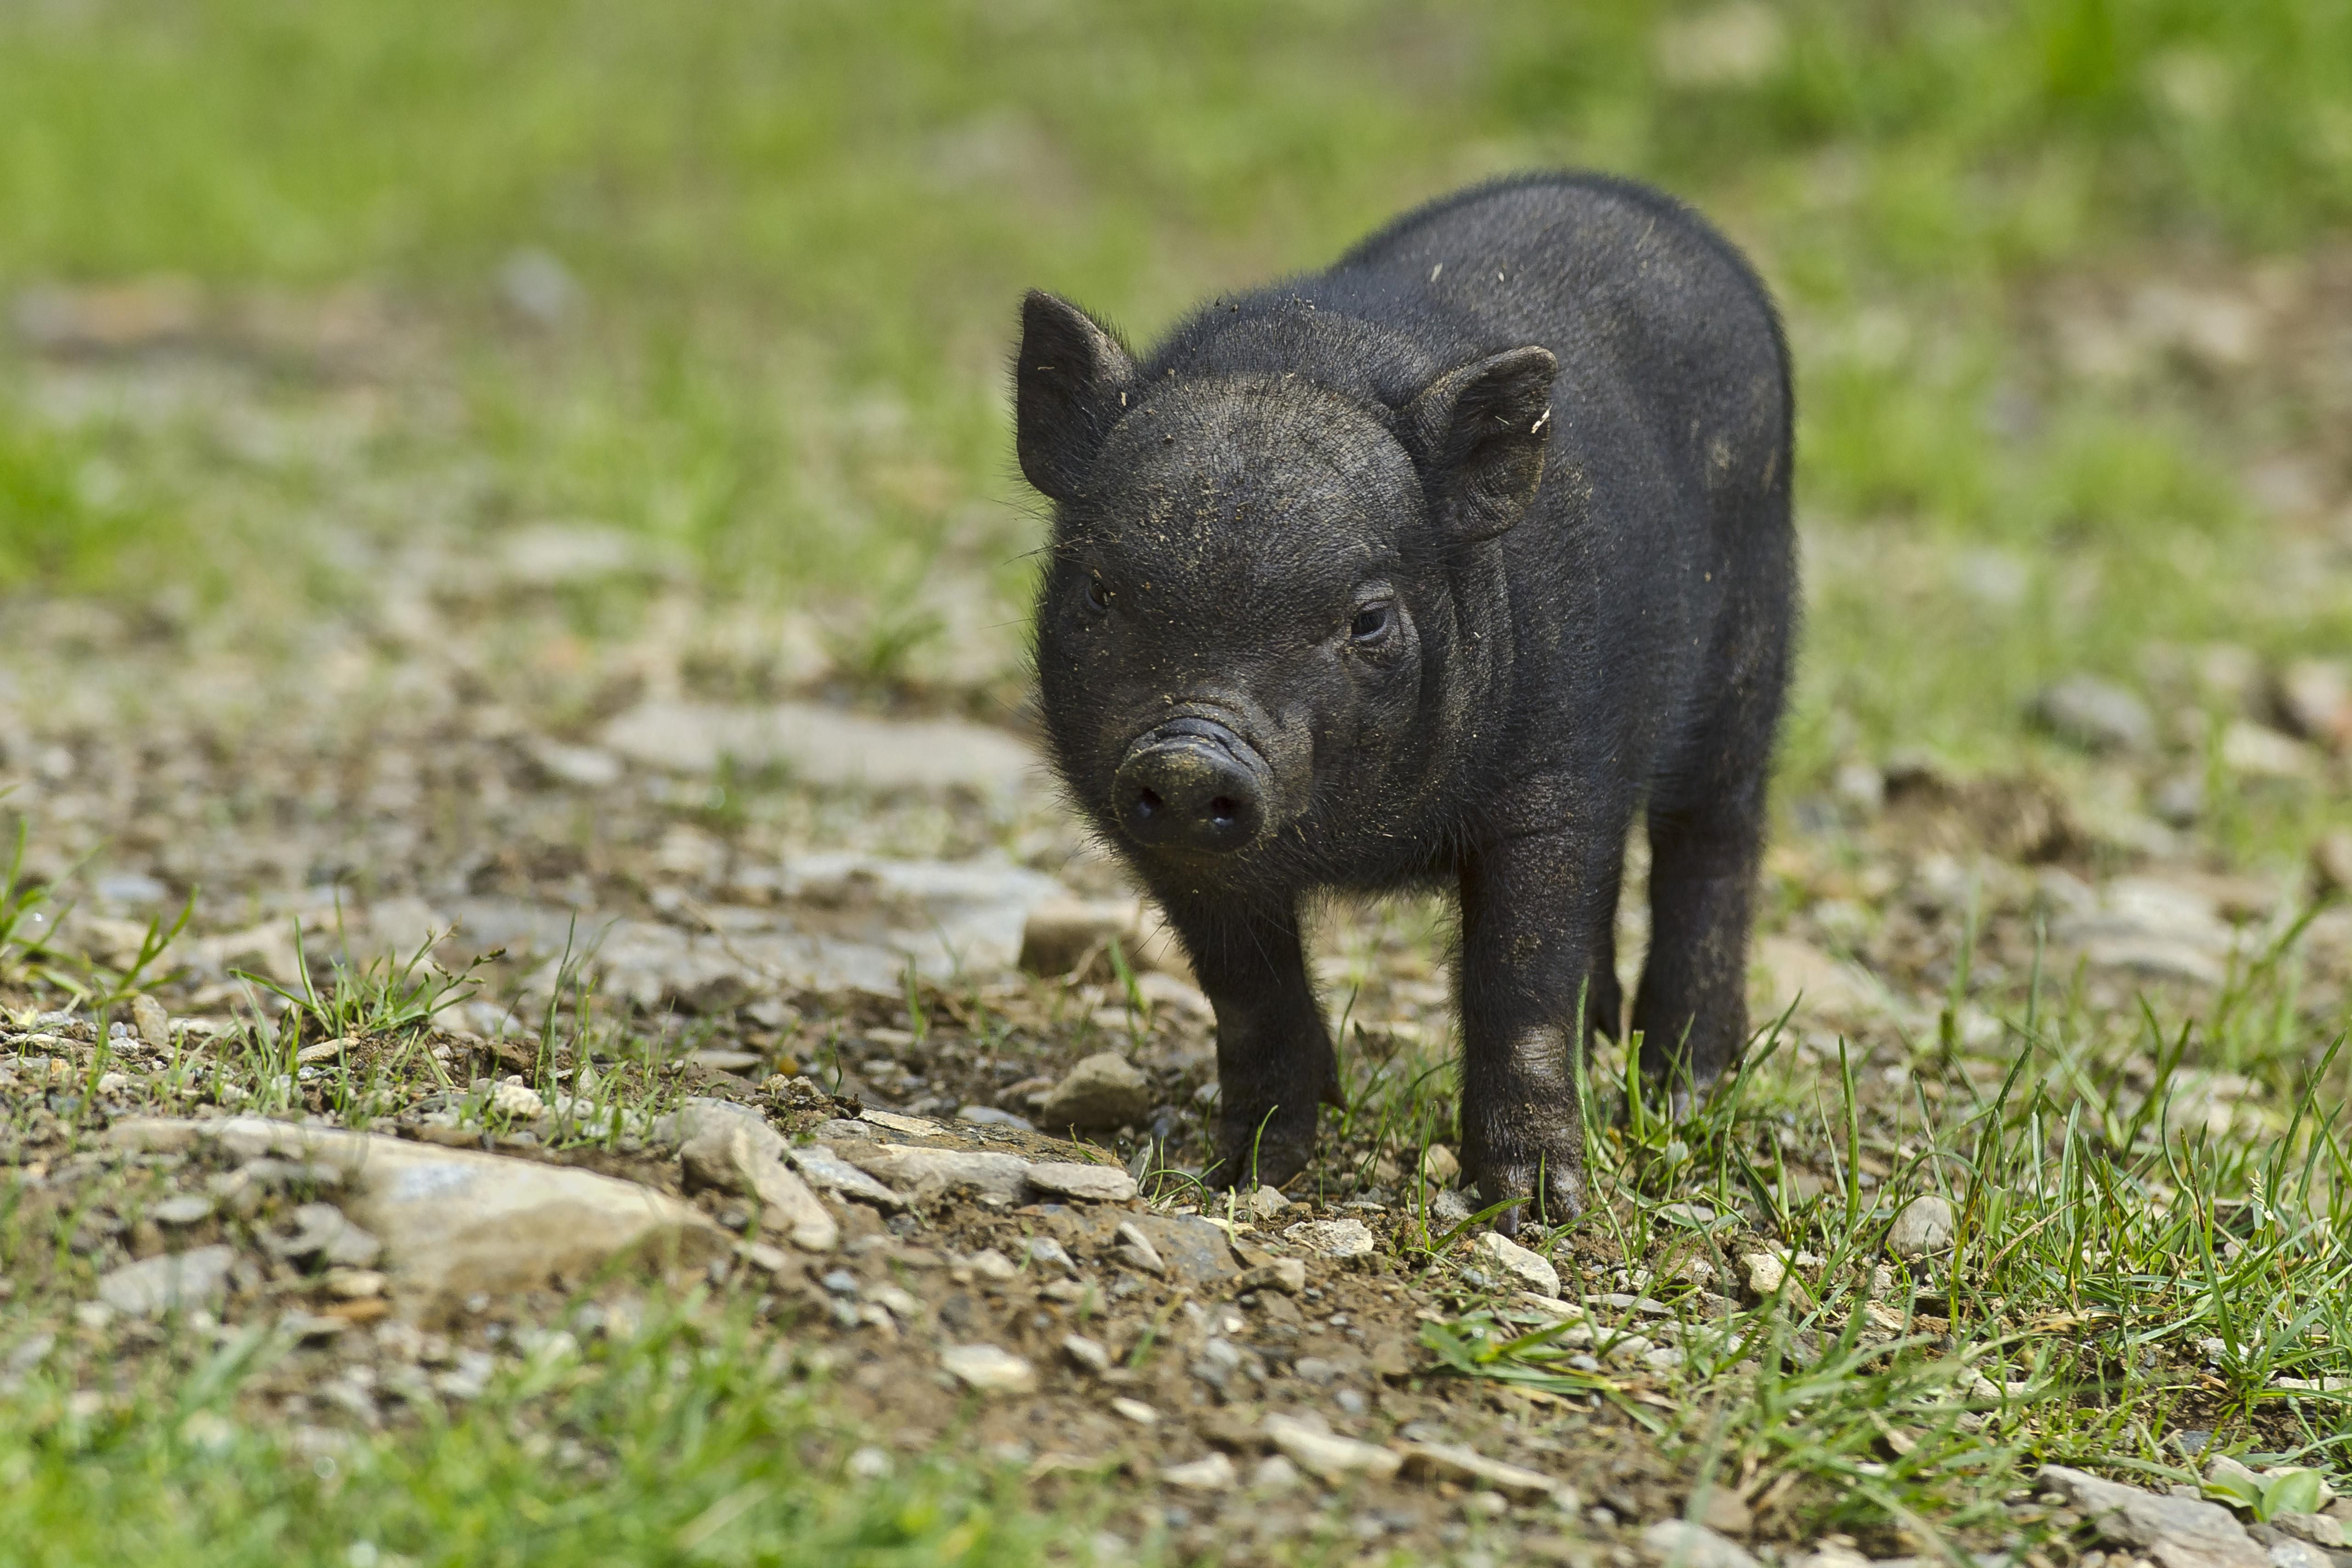 What Do Pot Bellied Pigs Eat